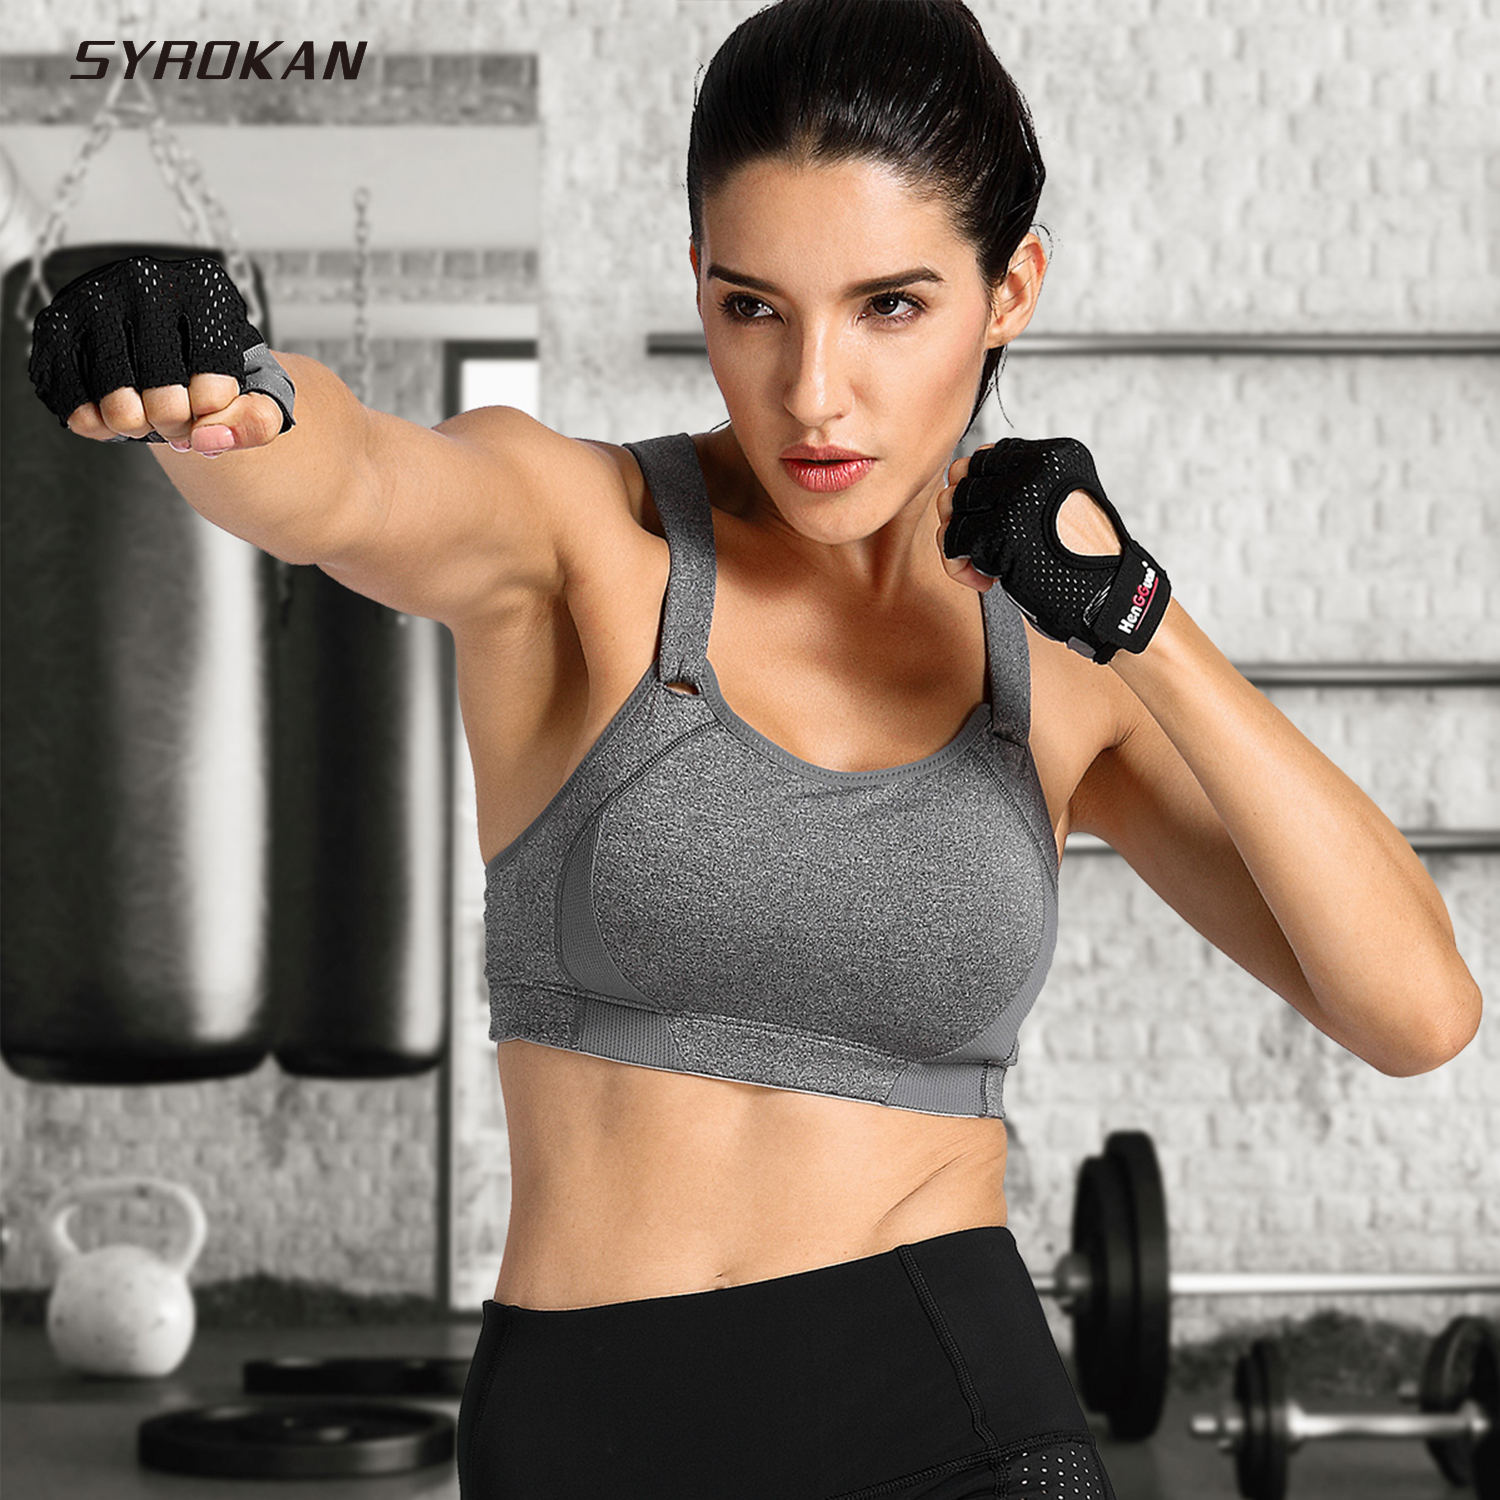 SYROKAN Women's High Impact Wire Free Full Coverage Lightly Padded Sports Bra